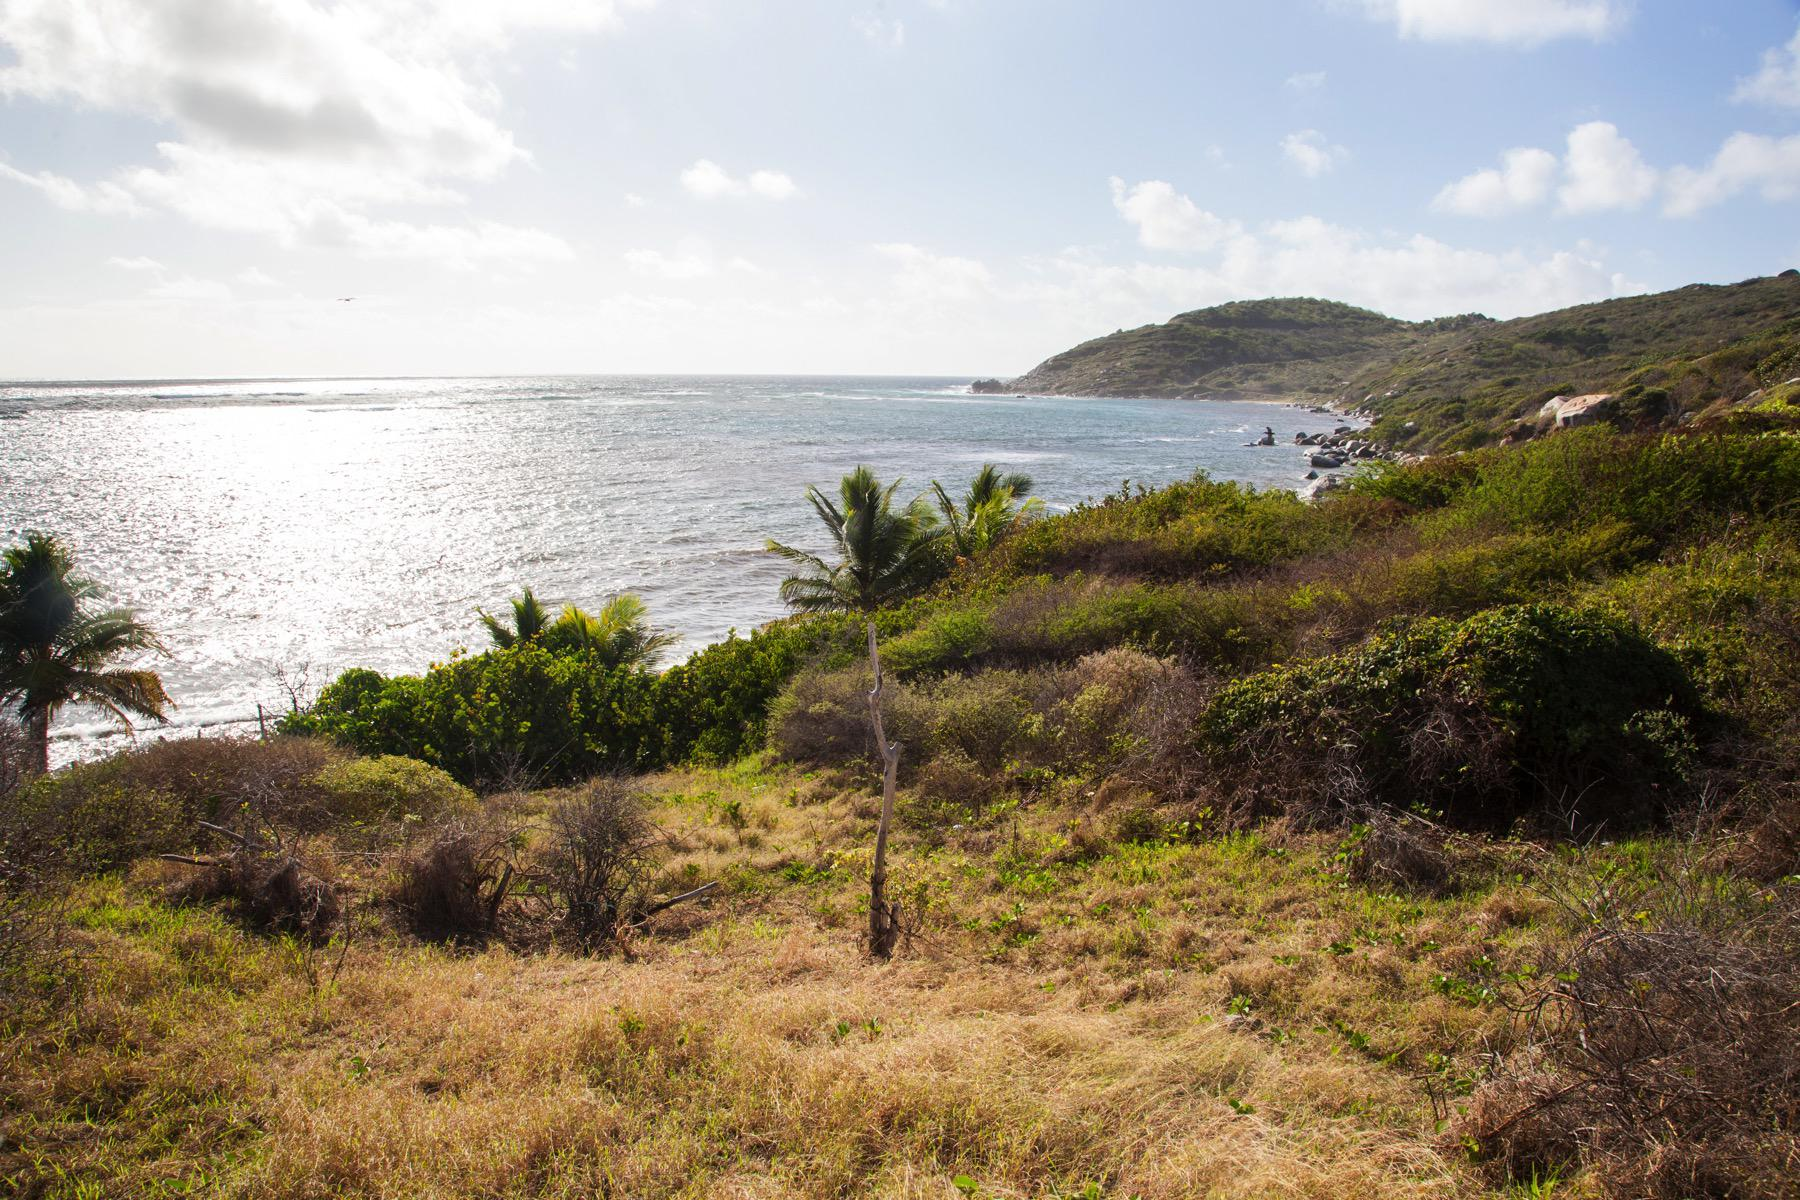 Windy Hill Waterfront Land 401 Windy Hill, Virgin Gorda British Virgin Islands